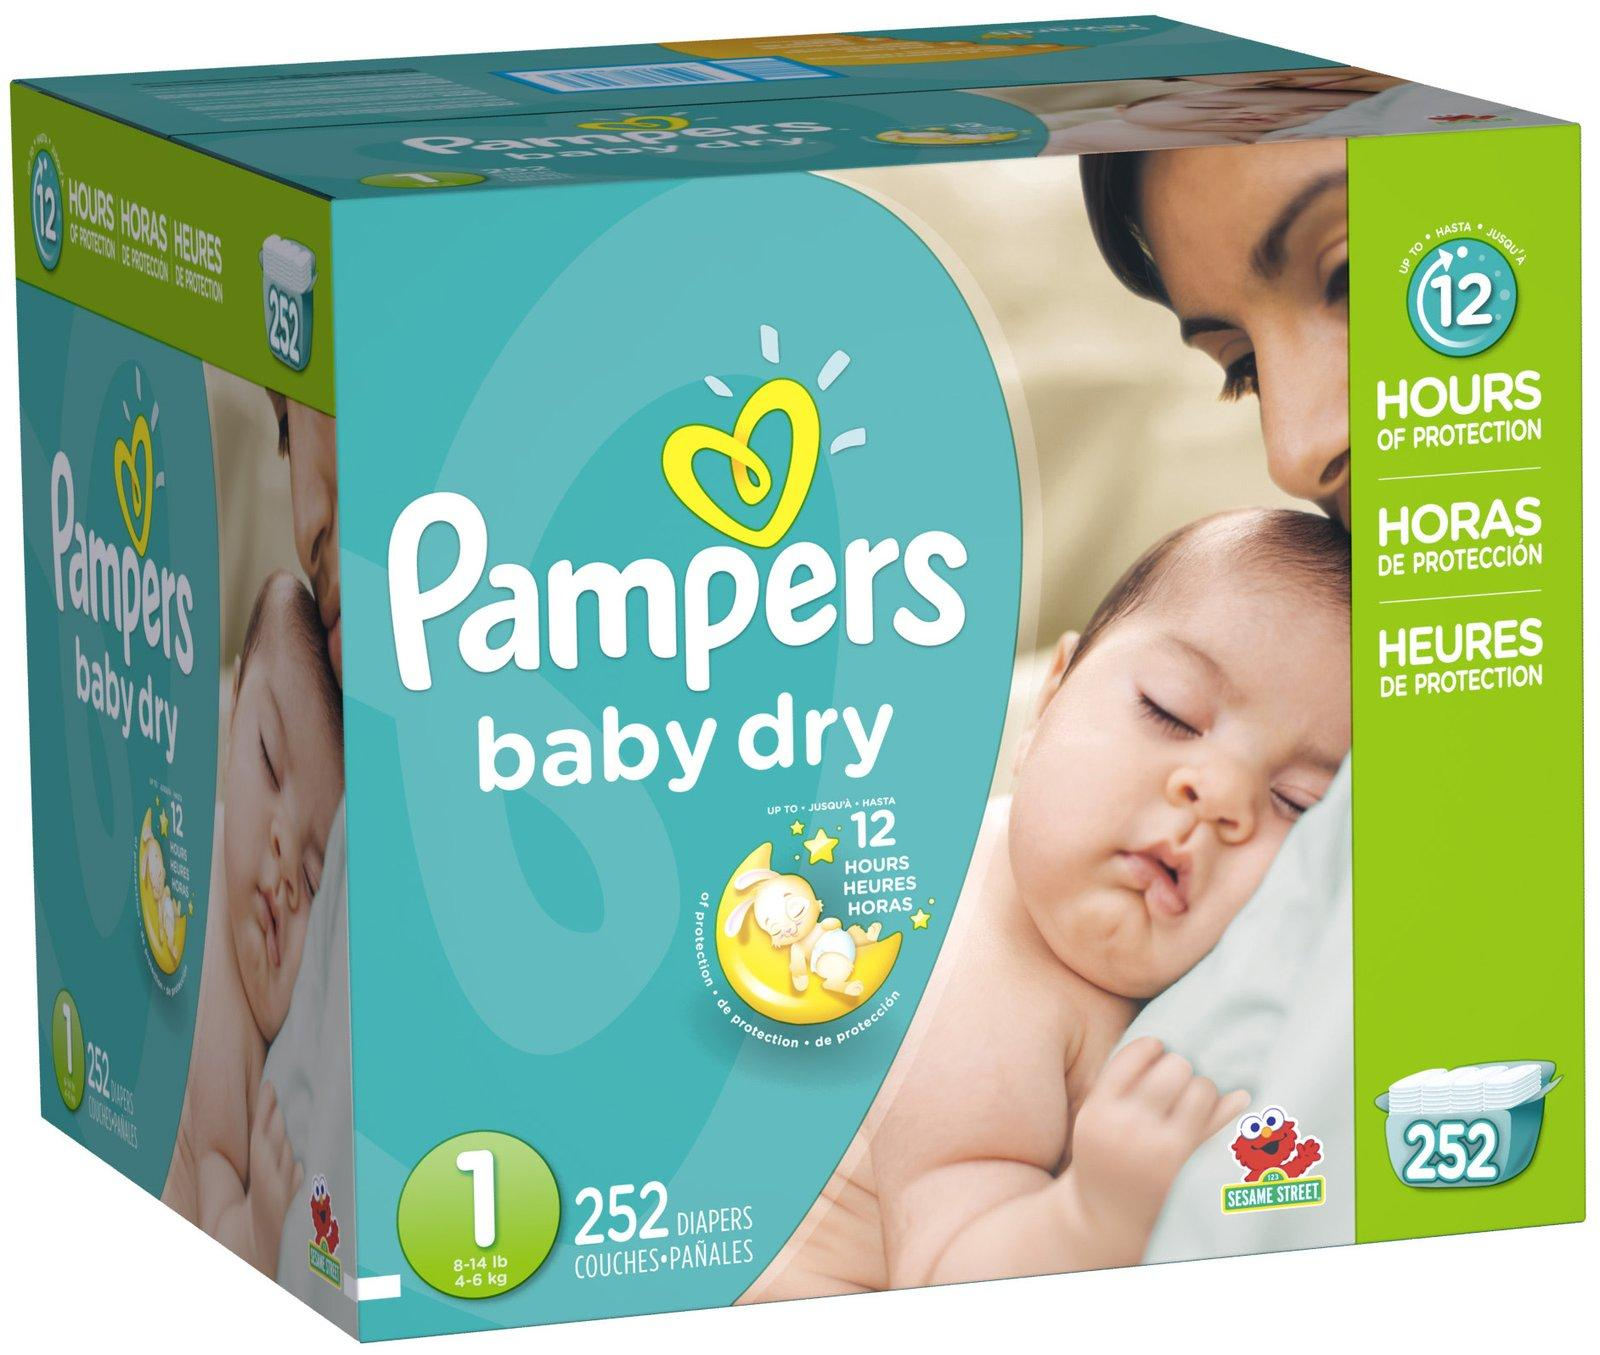 $5 Off + 20% Off Select Pampers Diaper Sale @ Amazon.com